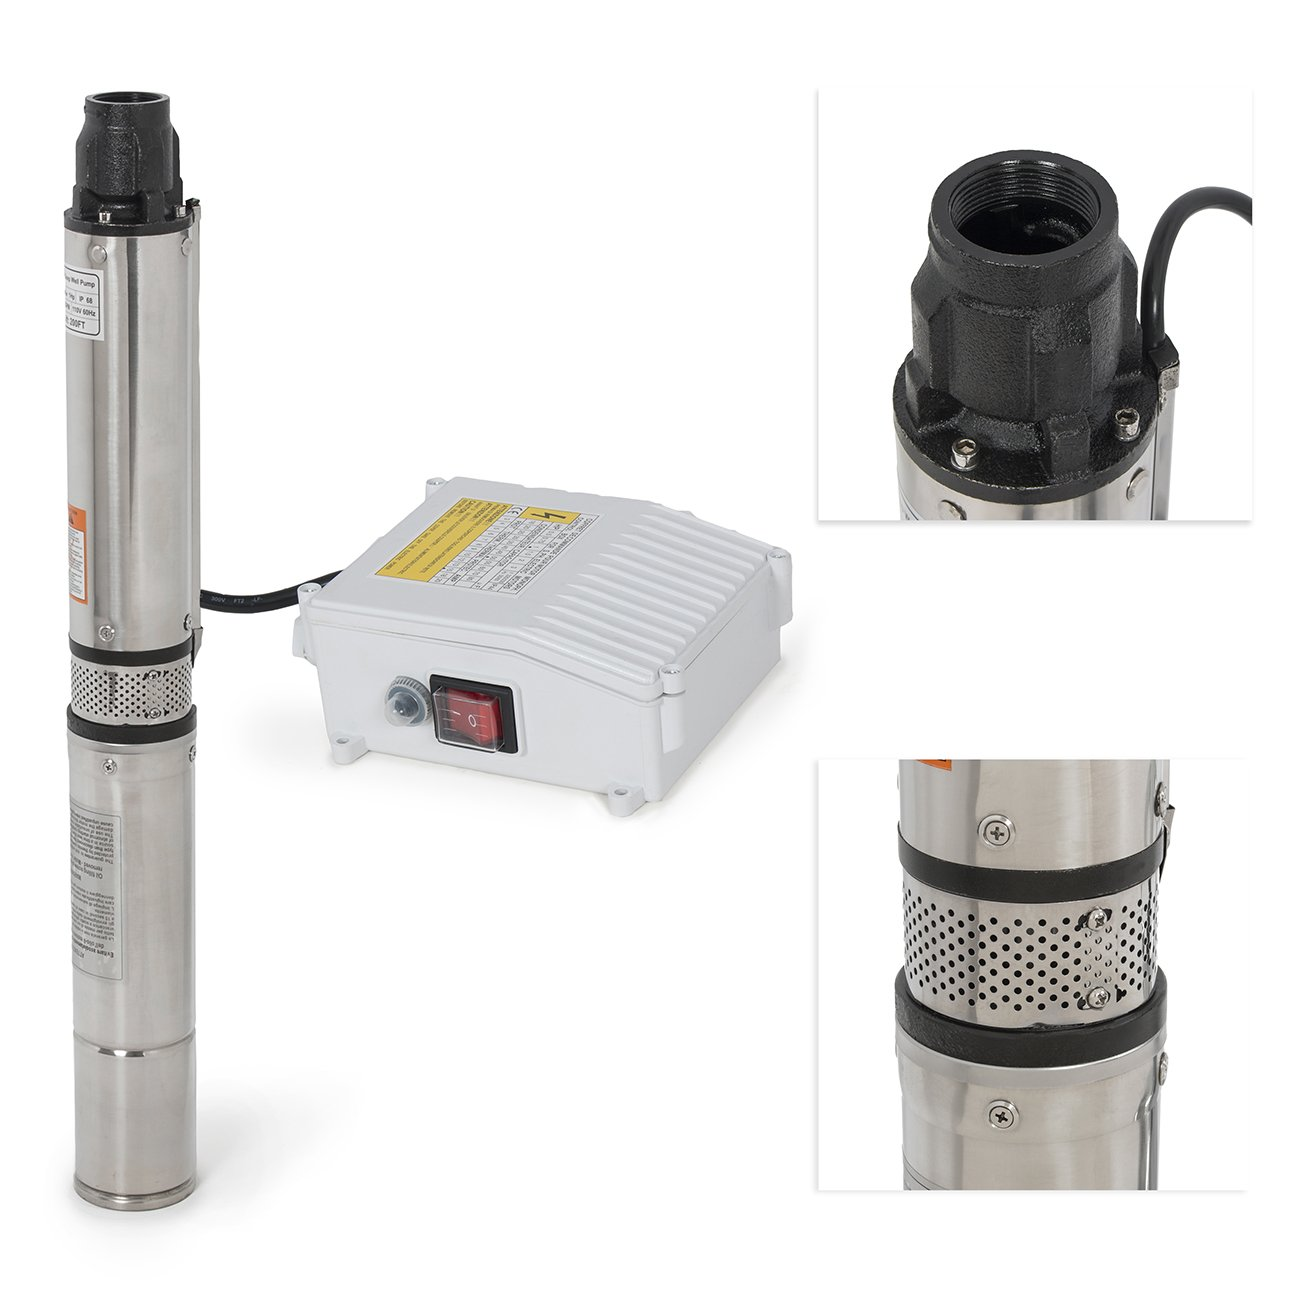 ARKSEN Deep Well Submersible Pump + Control Box, 1 HP, 110v, 60hz, 33GPM, 200FT Head, Stainless Steel, 4''